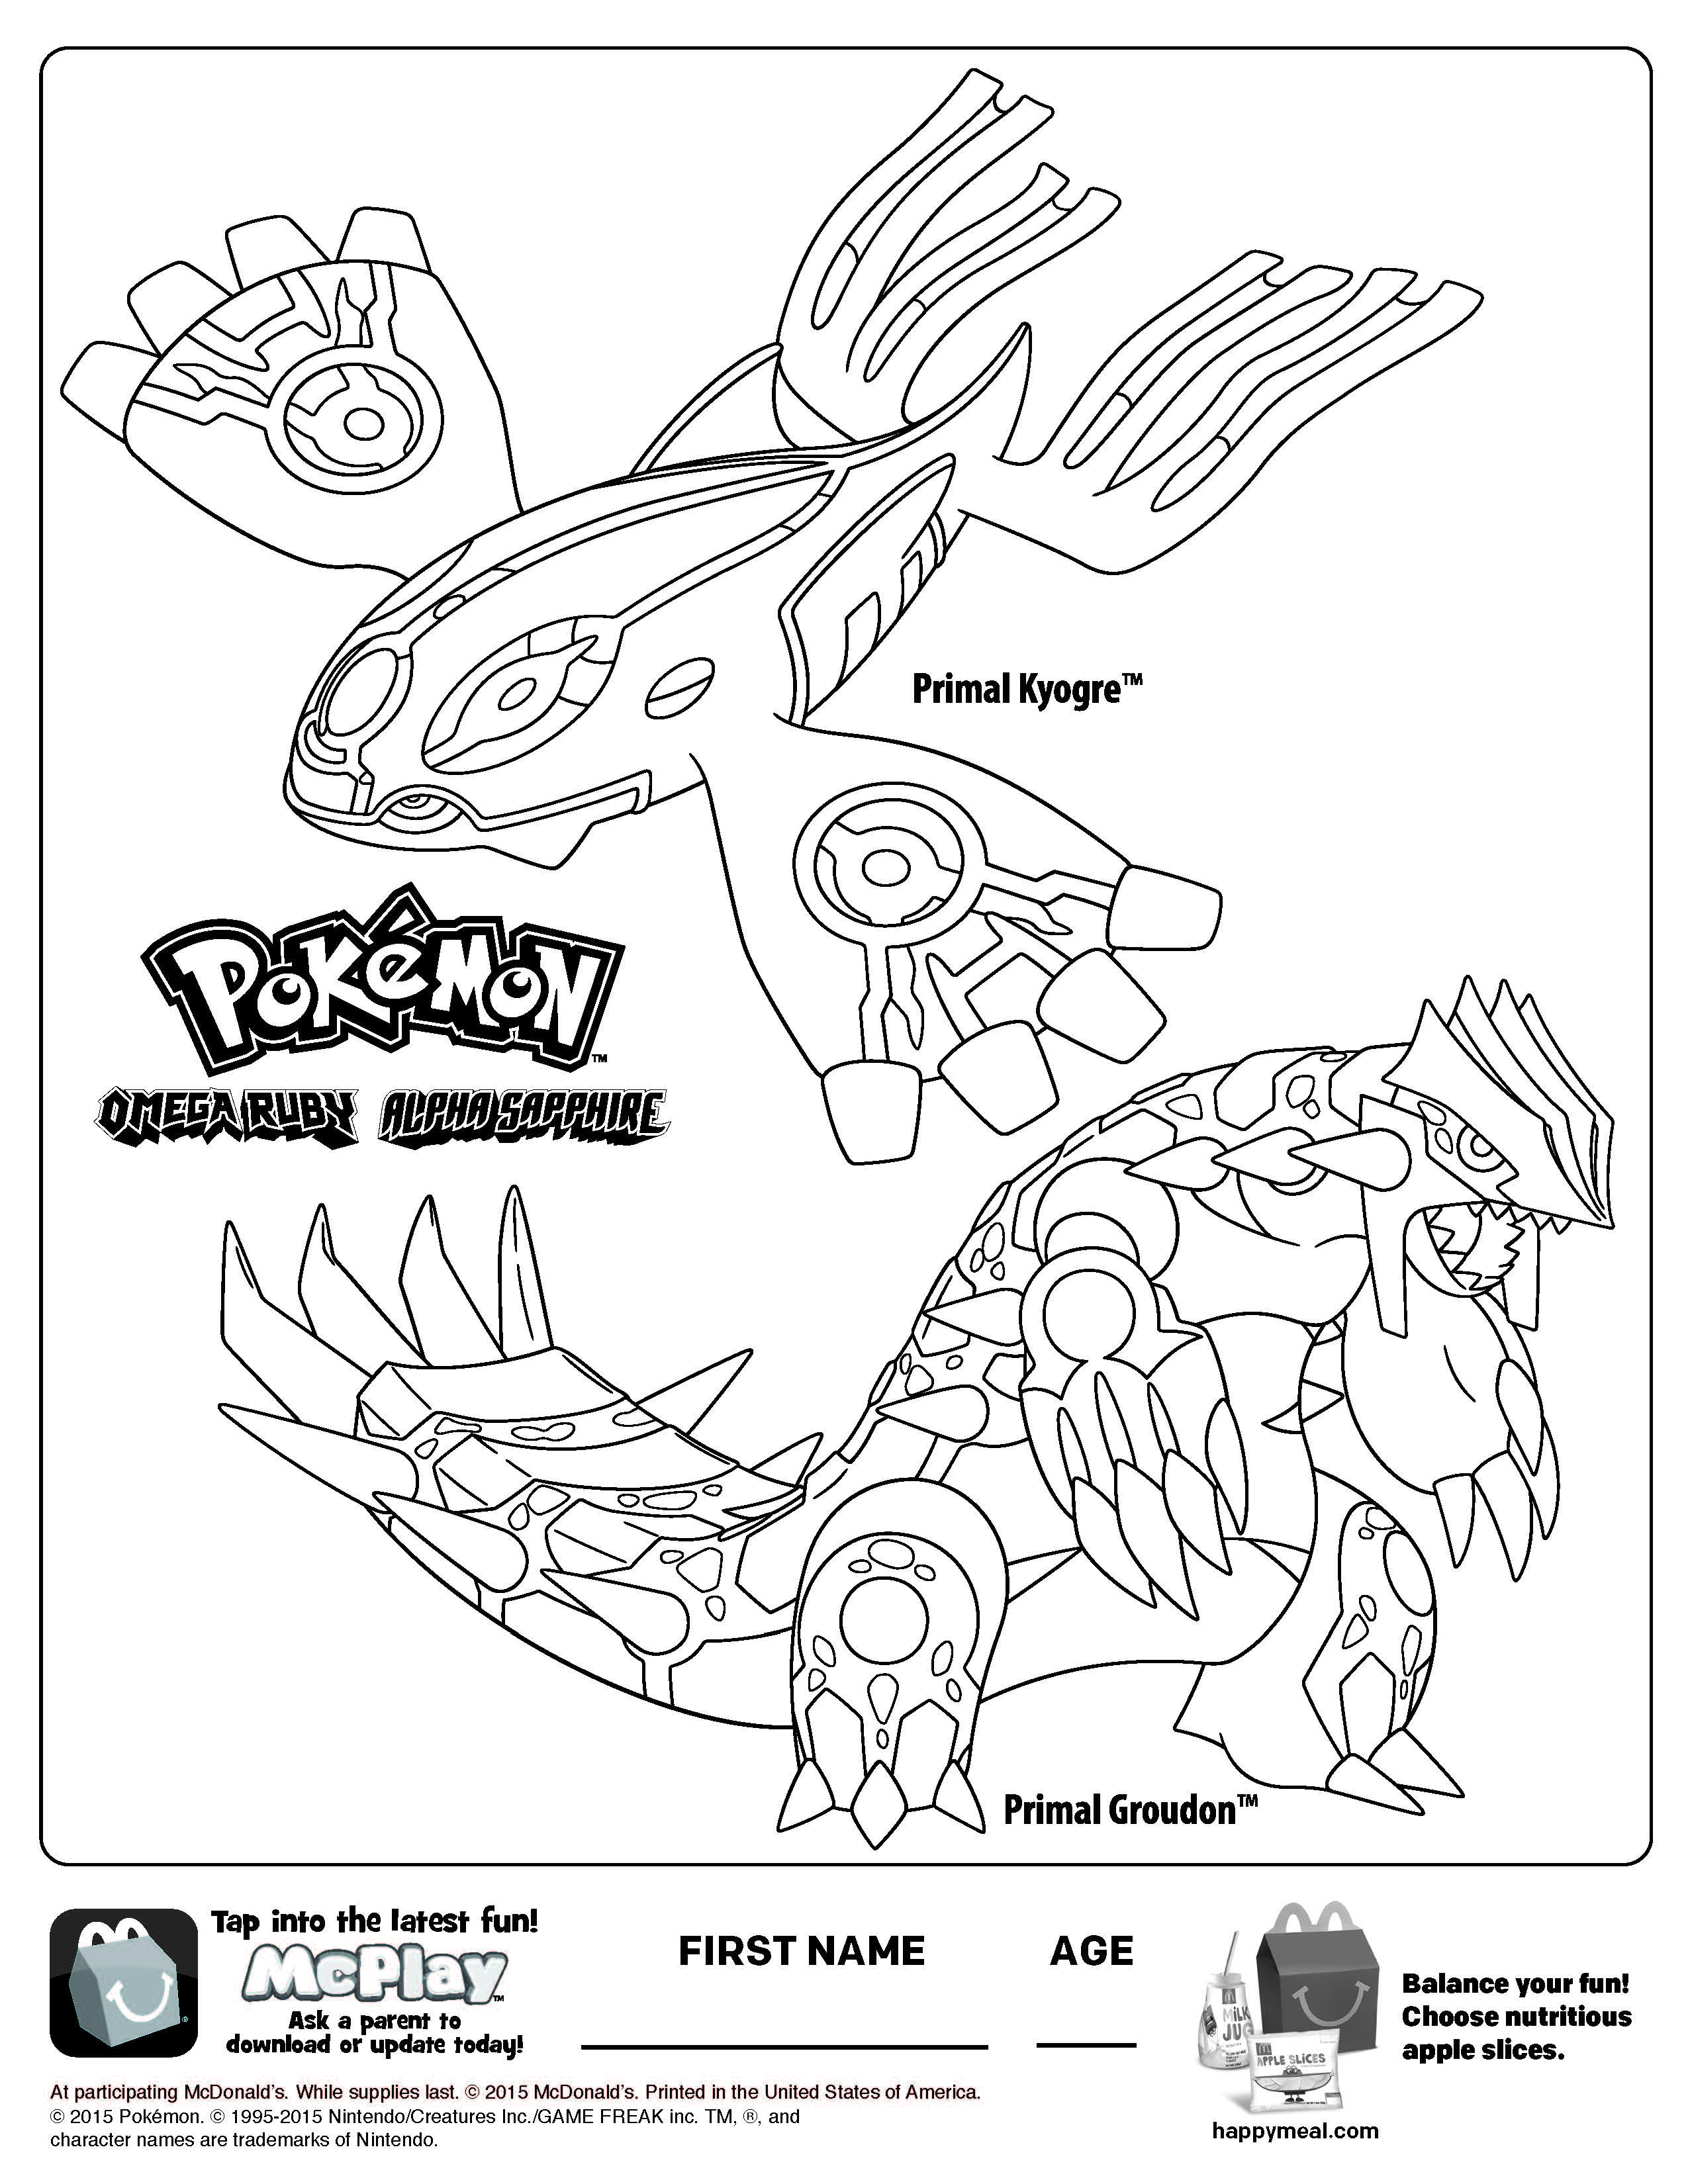 happy meal coloring pages | Free McDonalds Happy Meal Pokemon Printable Coloring Page ...